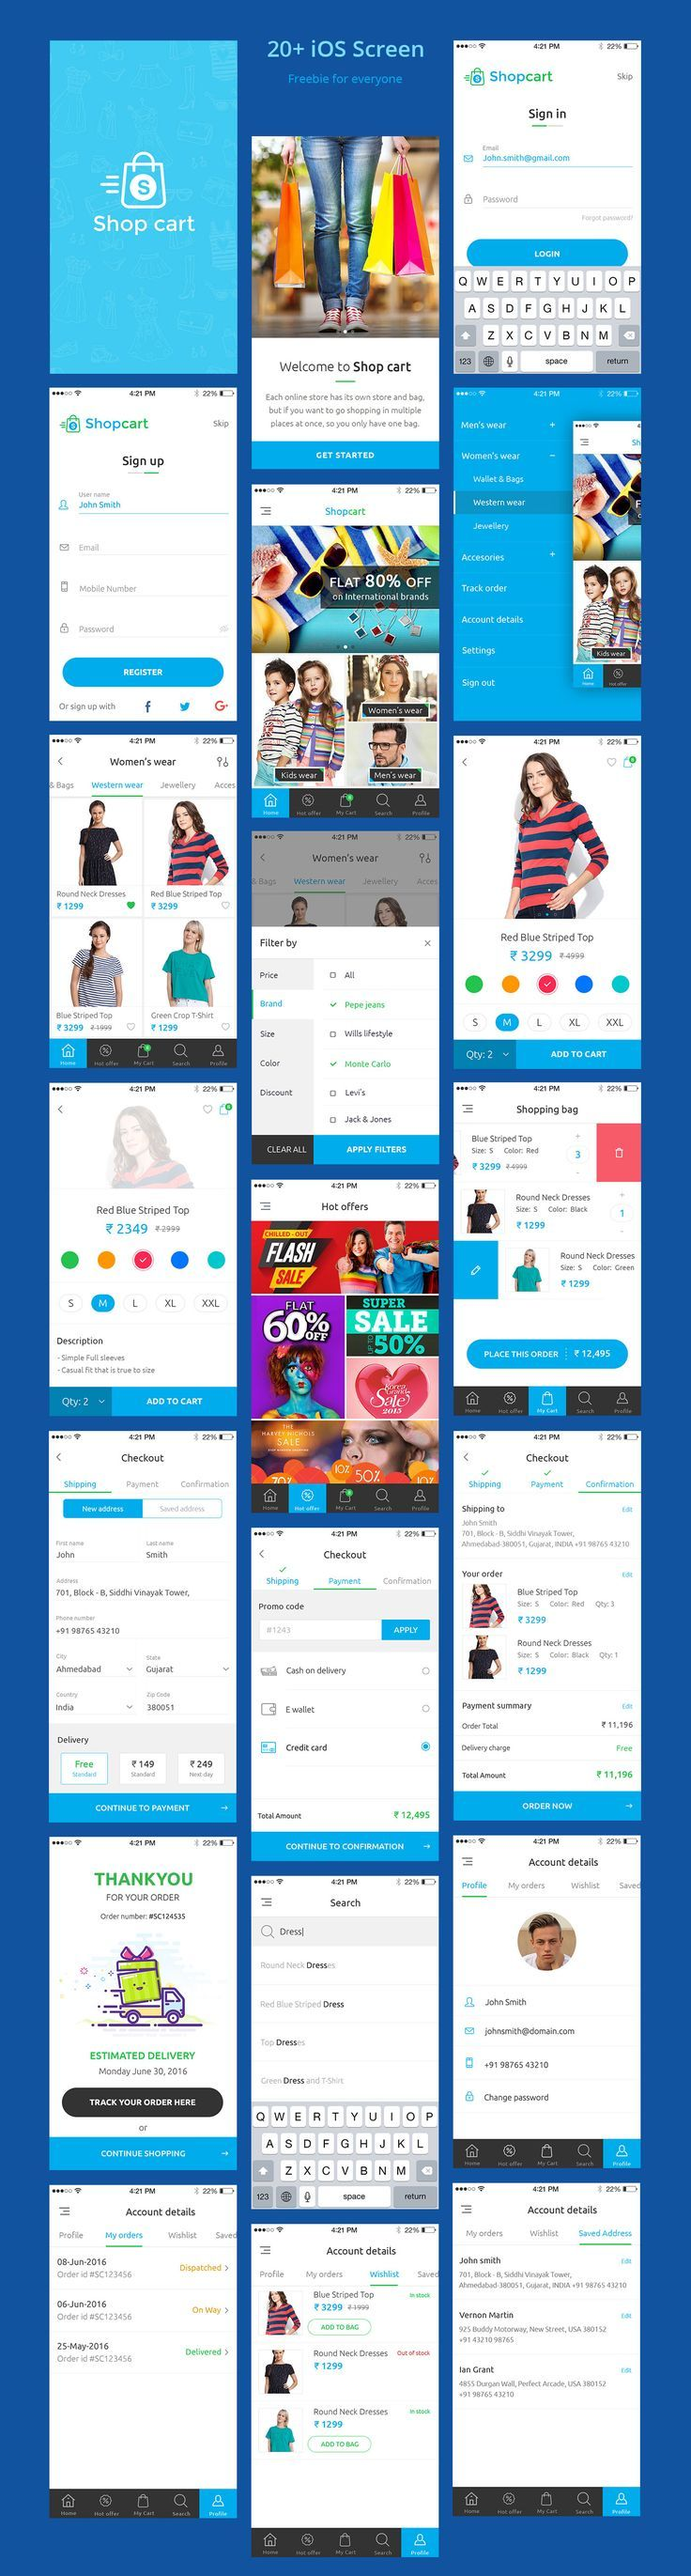 Free UI PSD for eCommerce Mobile App More PSD: 72pxdesigns - Love a good success story? Learn how I went from zero to 1 million in sales in 5 months with an e-commerce store.